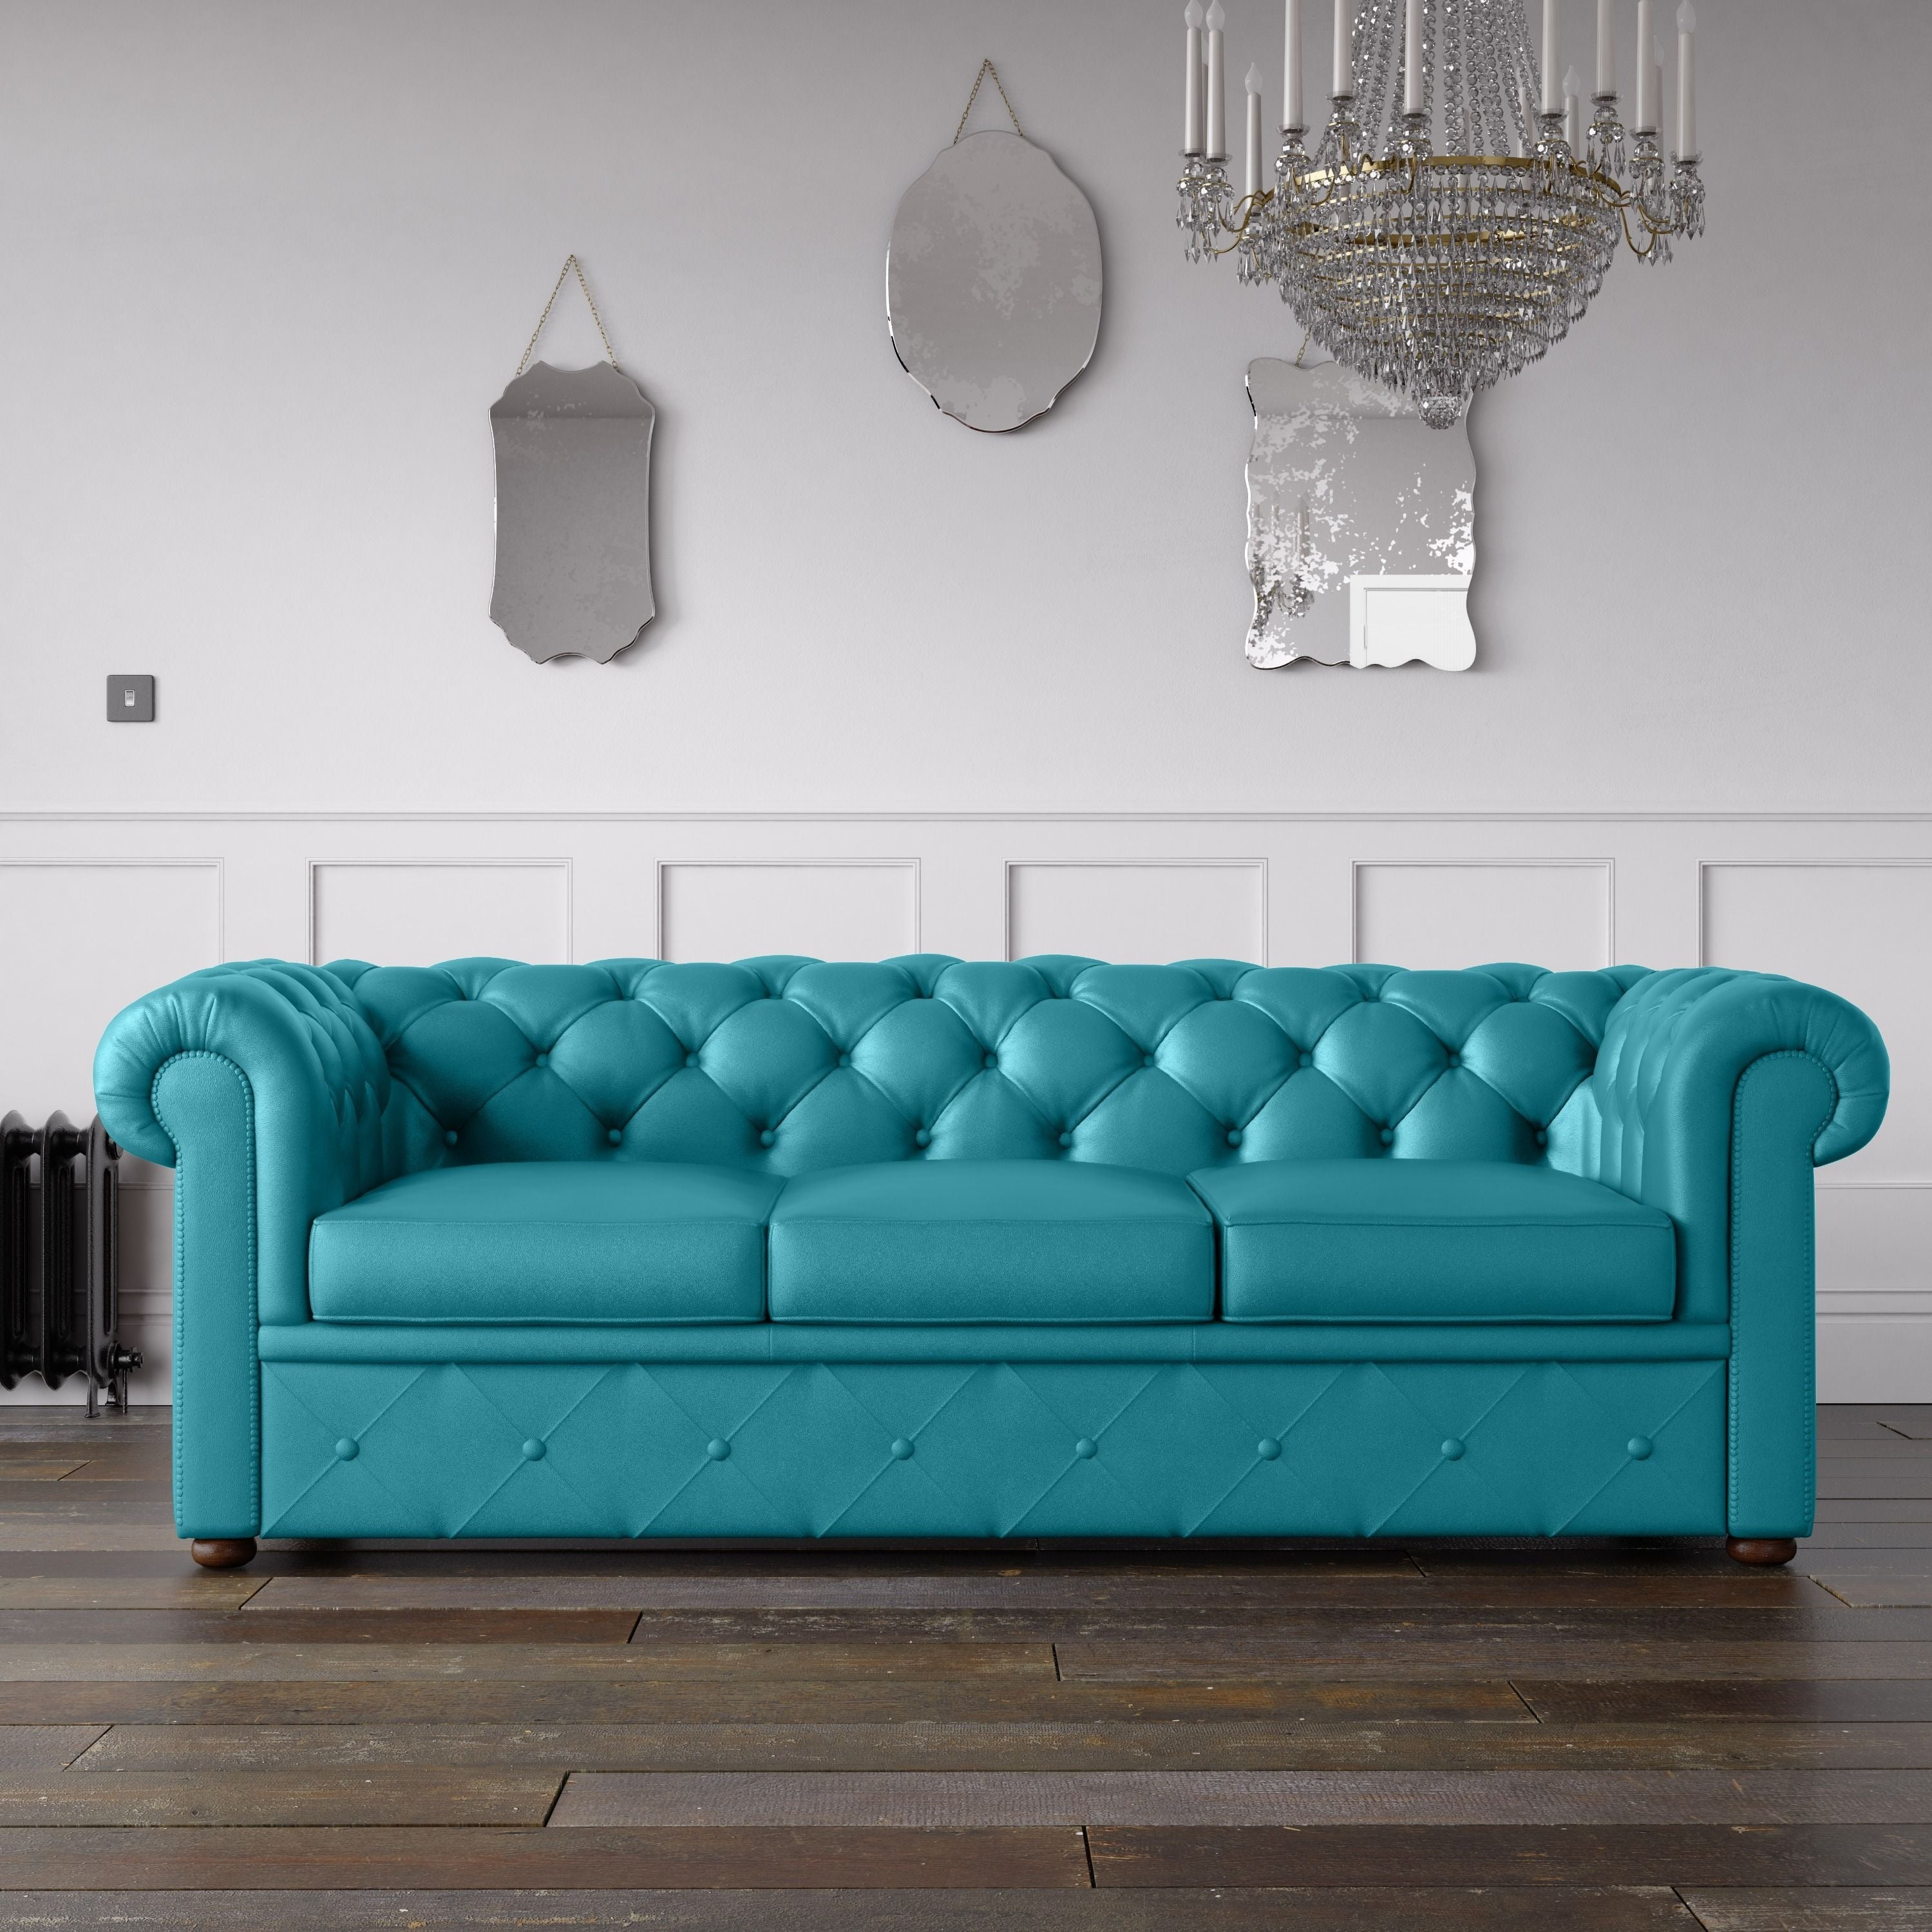 Exceptionnel Chesterfield Faux Leather Sofa Turquoise